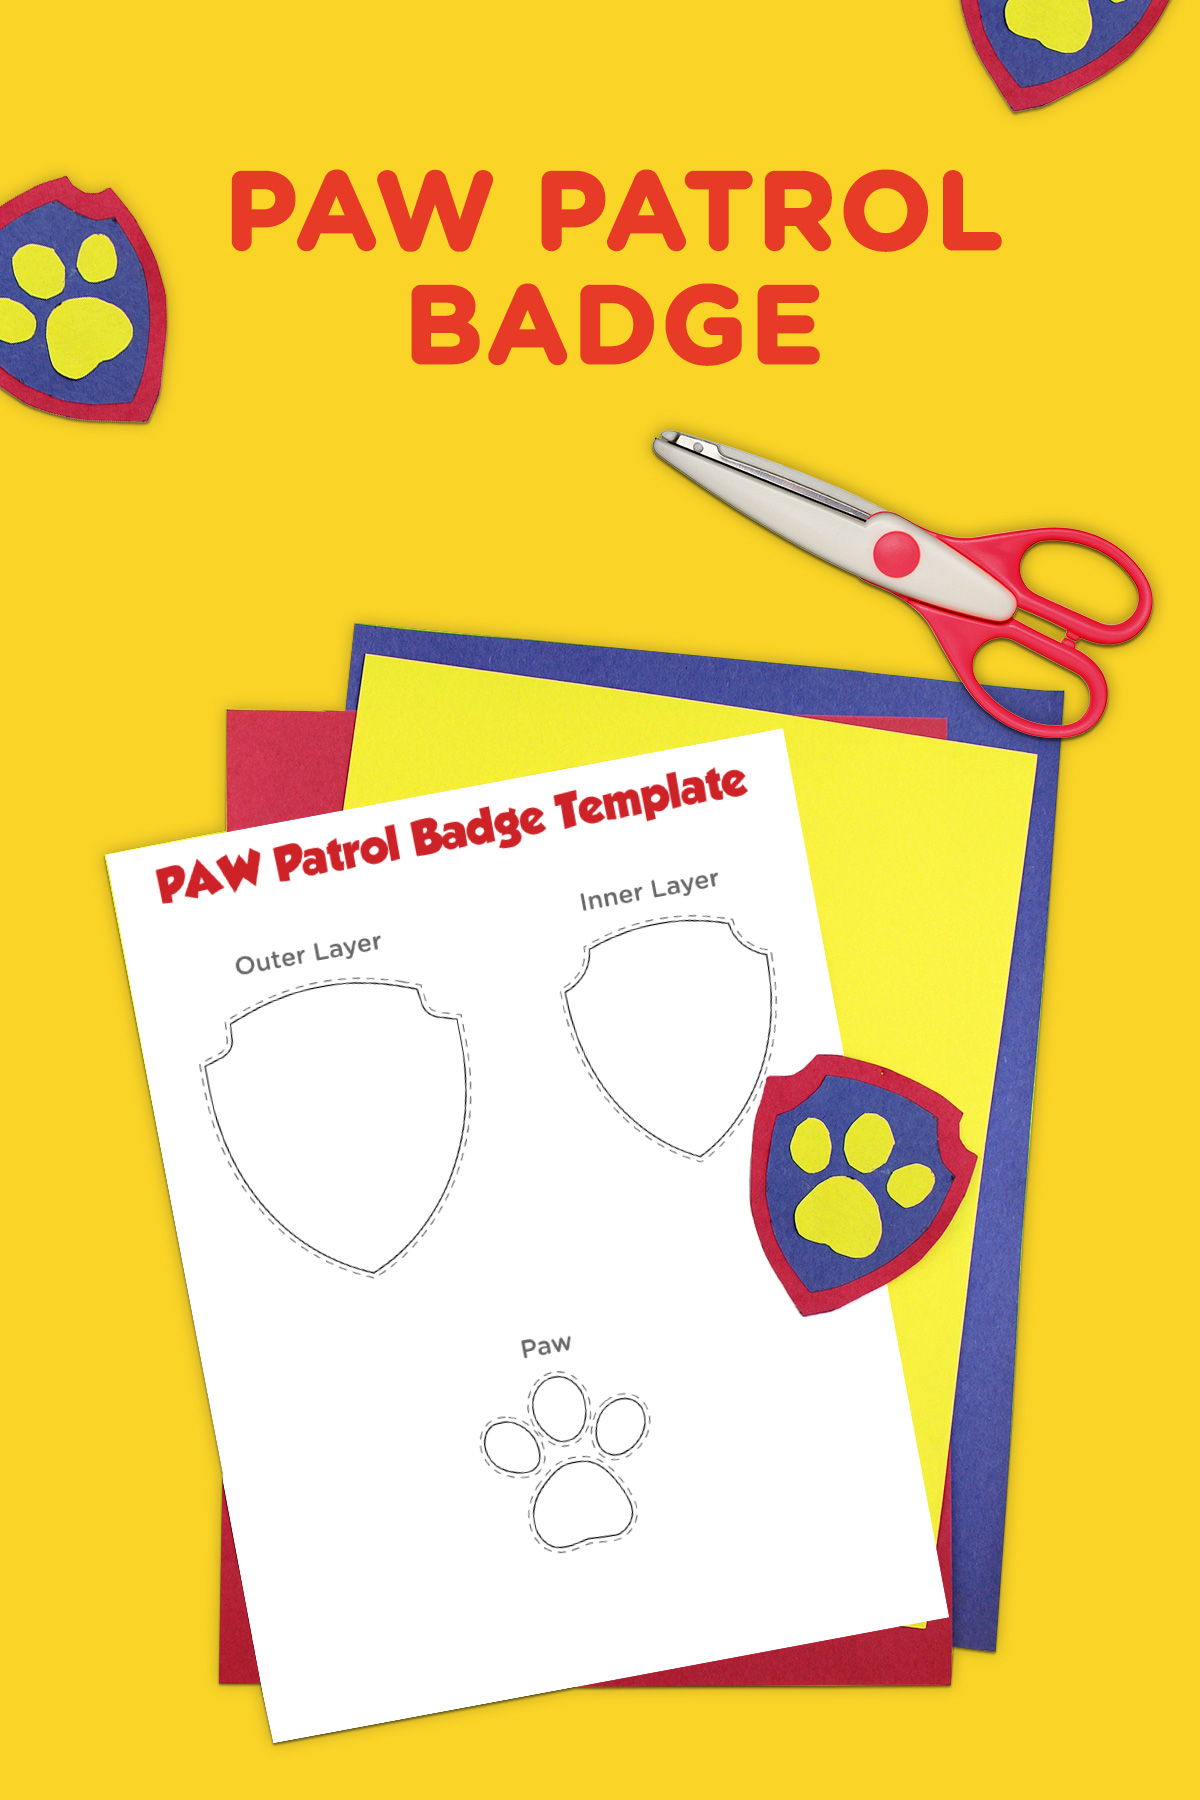 PAW Patrol Printable Badge Template